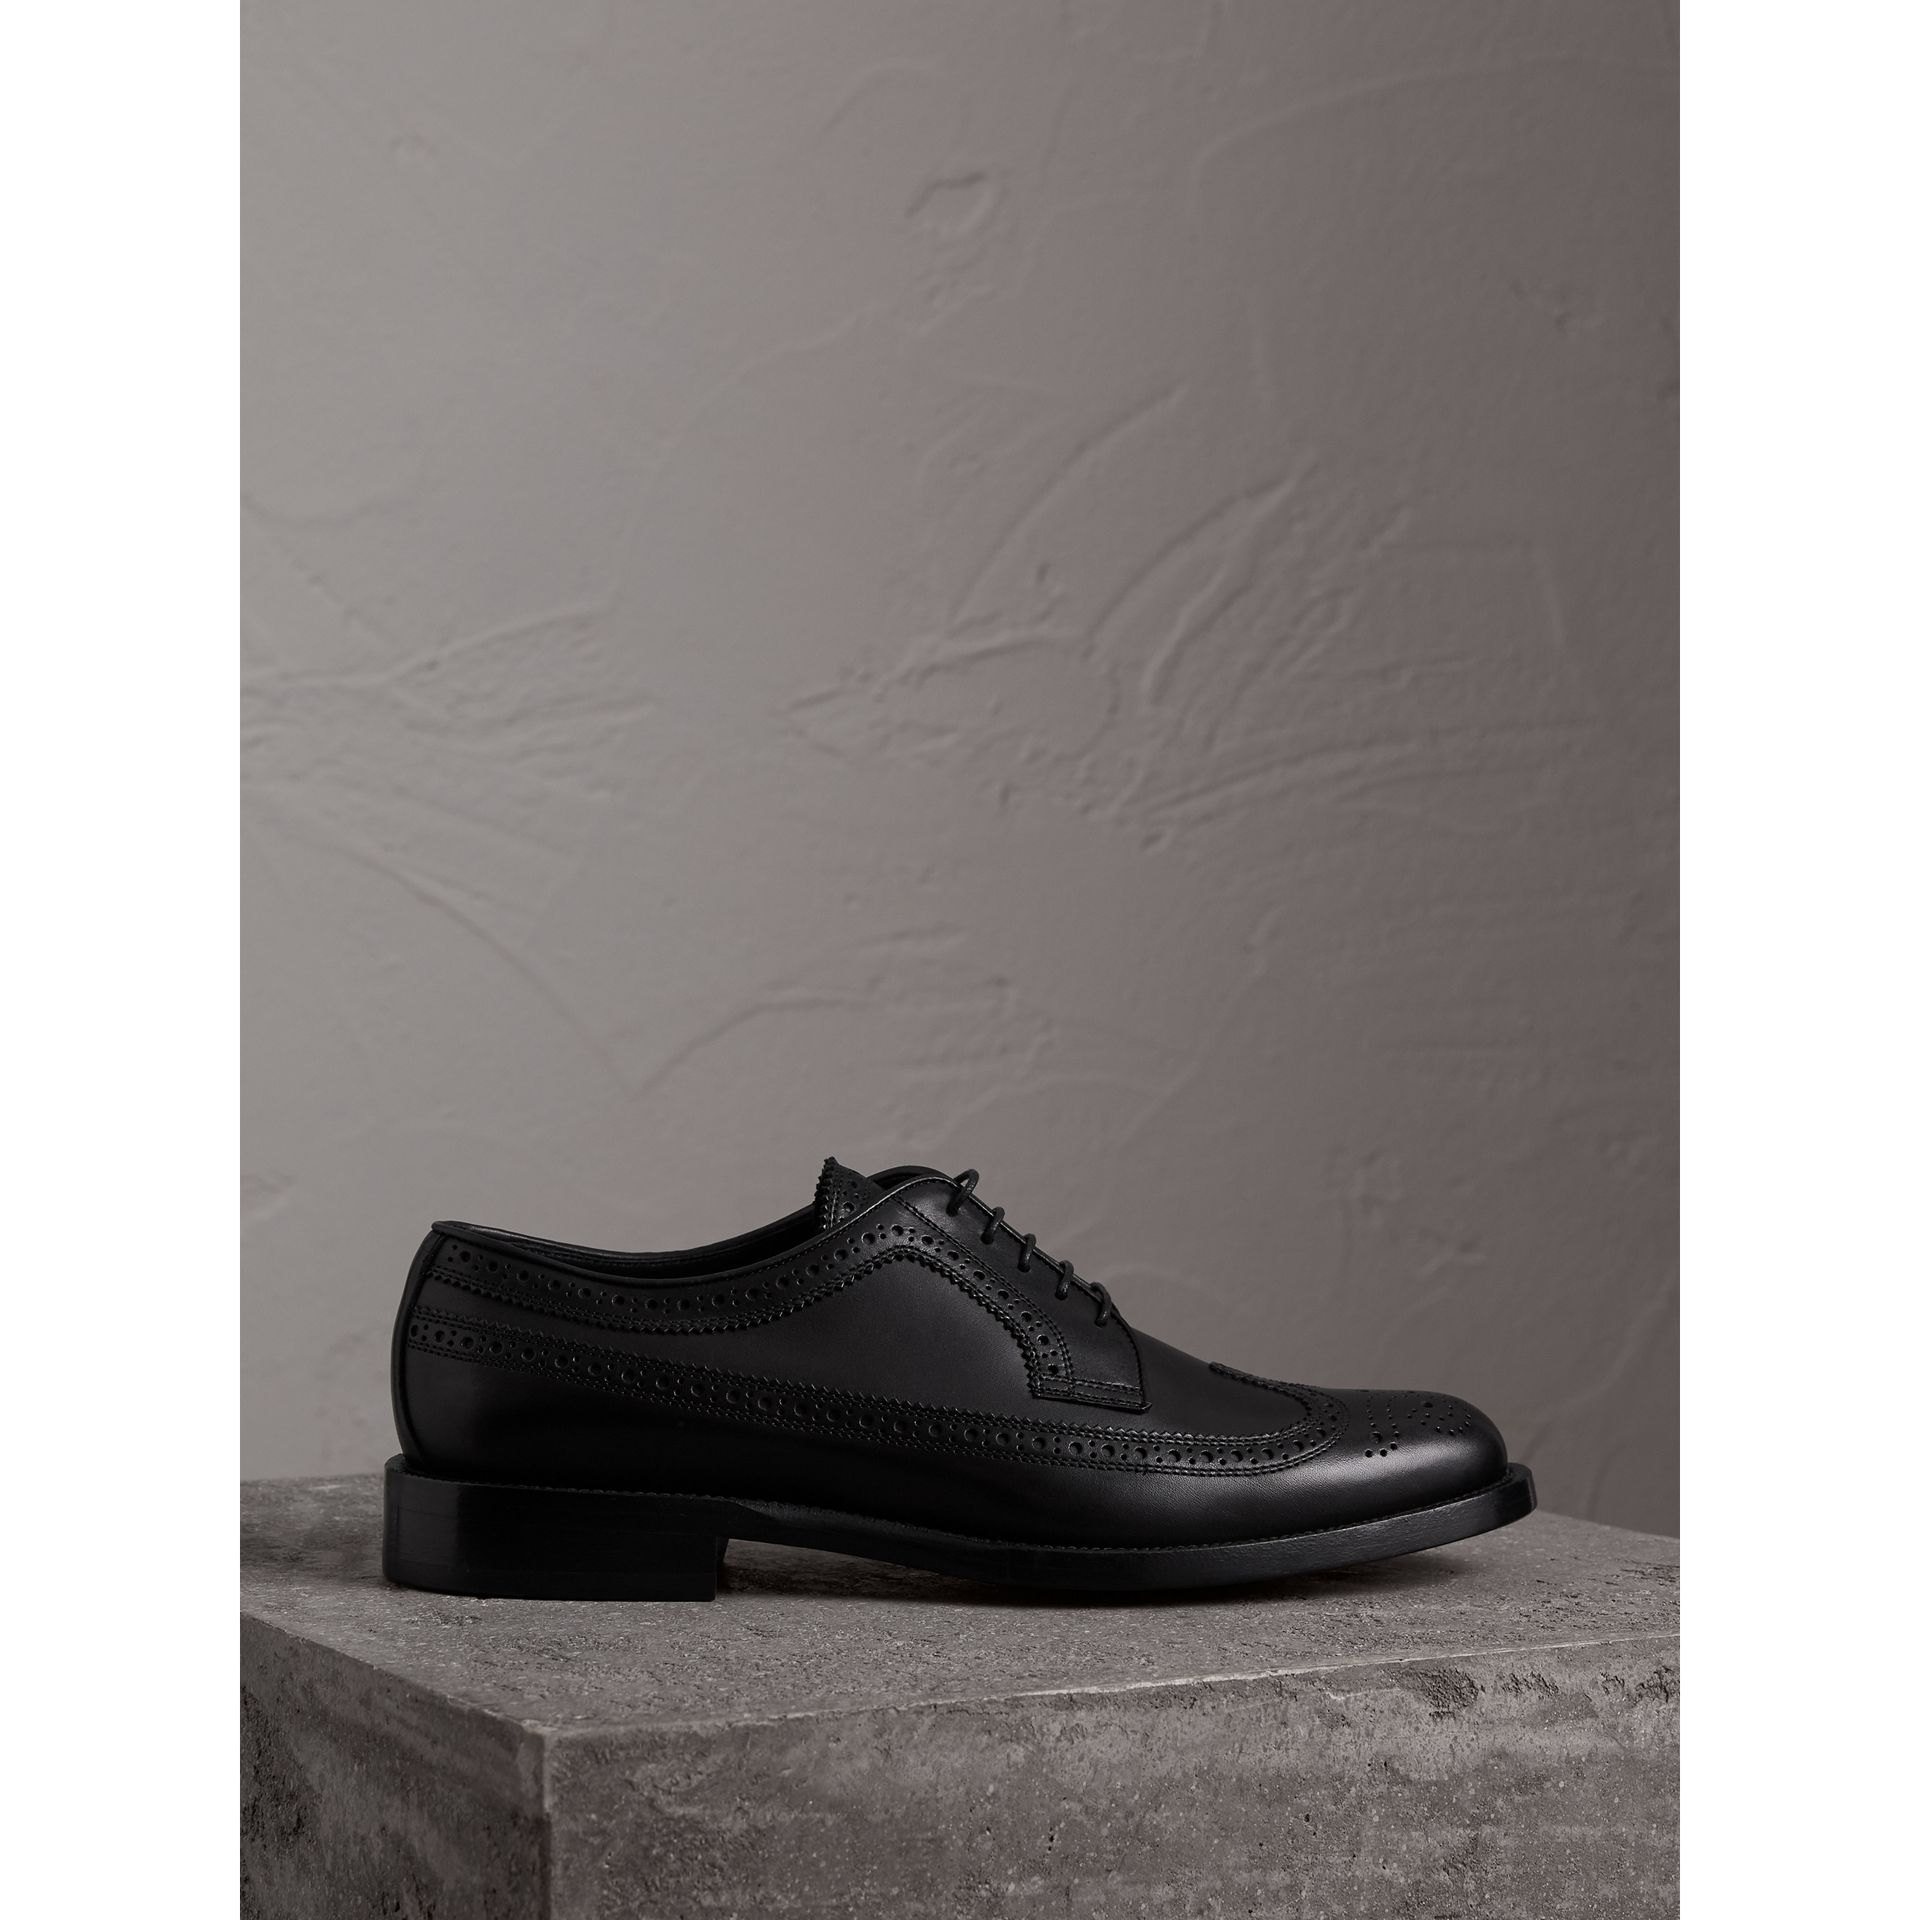 Burberry Black Leather Derby Brogues